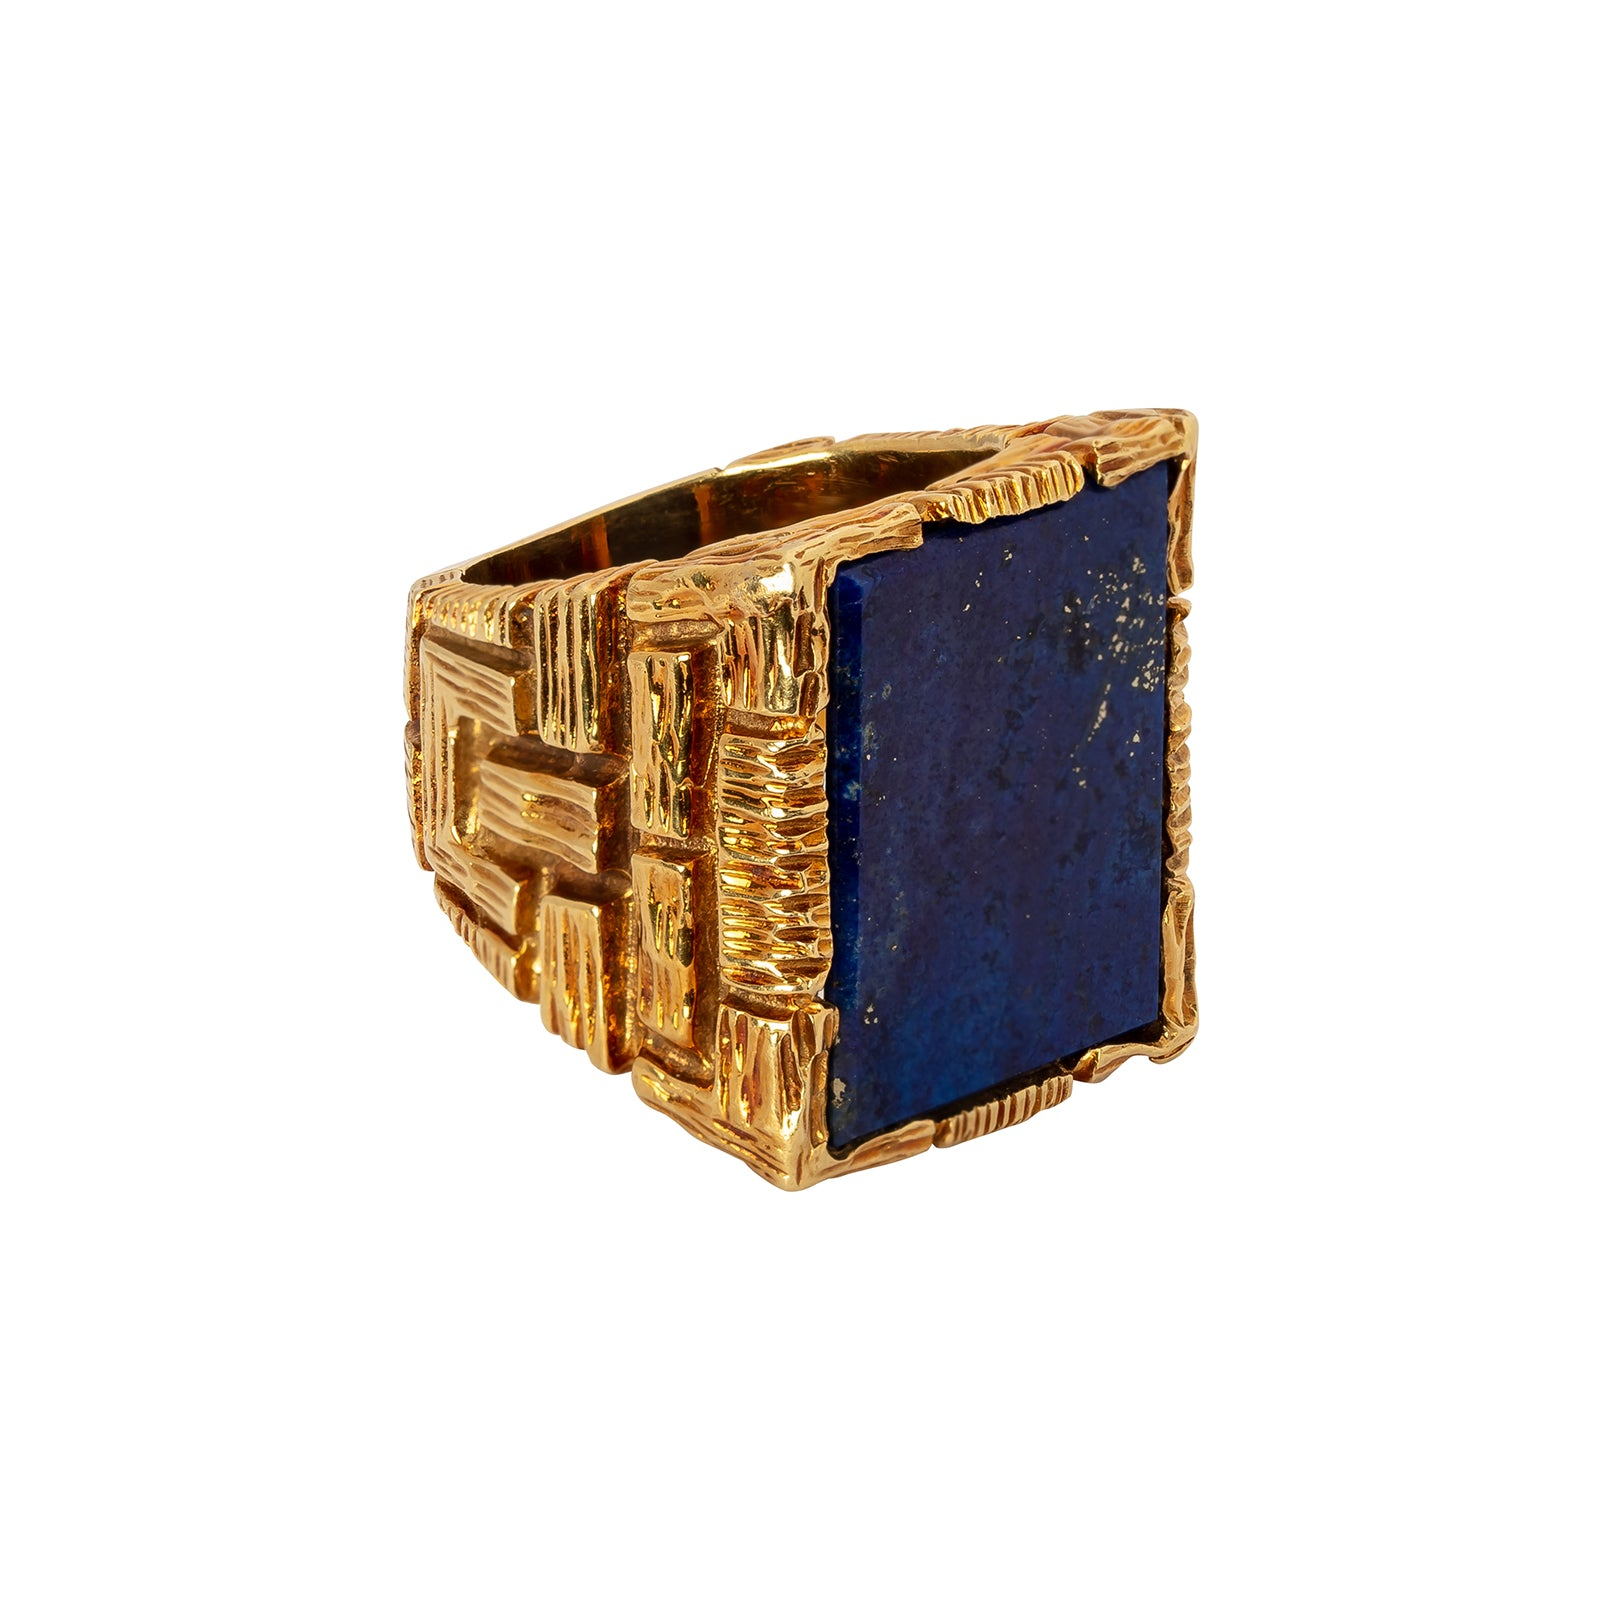 Antique & Vintage Jewelry Rectangular Lapis Lazuli Ring - Rings - Broken English Jewelry